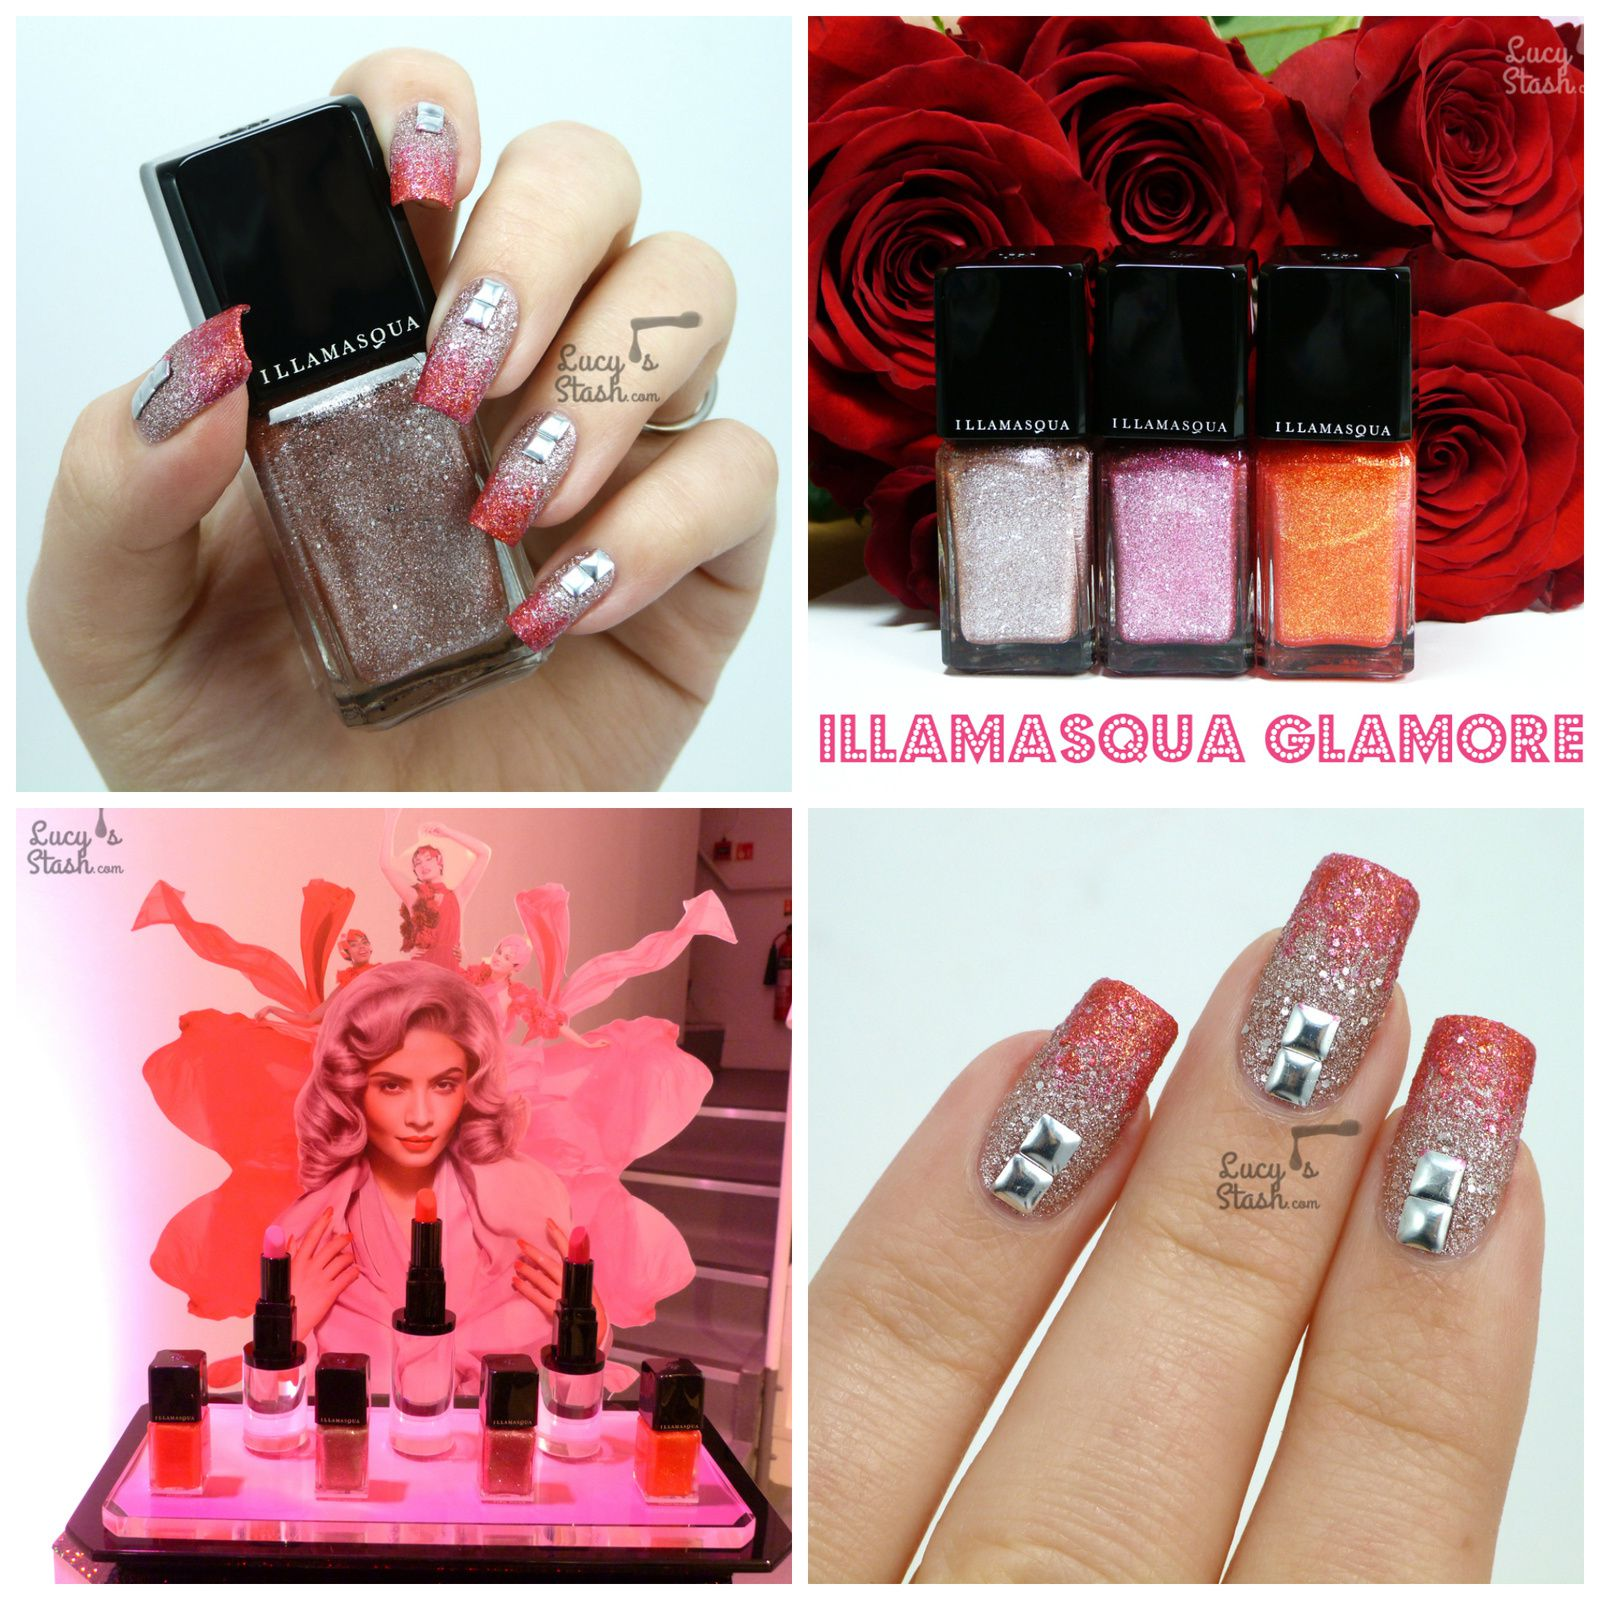 WIN Illamasqua GLAMORE Collection with Lucy's Stash